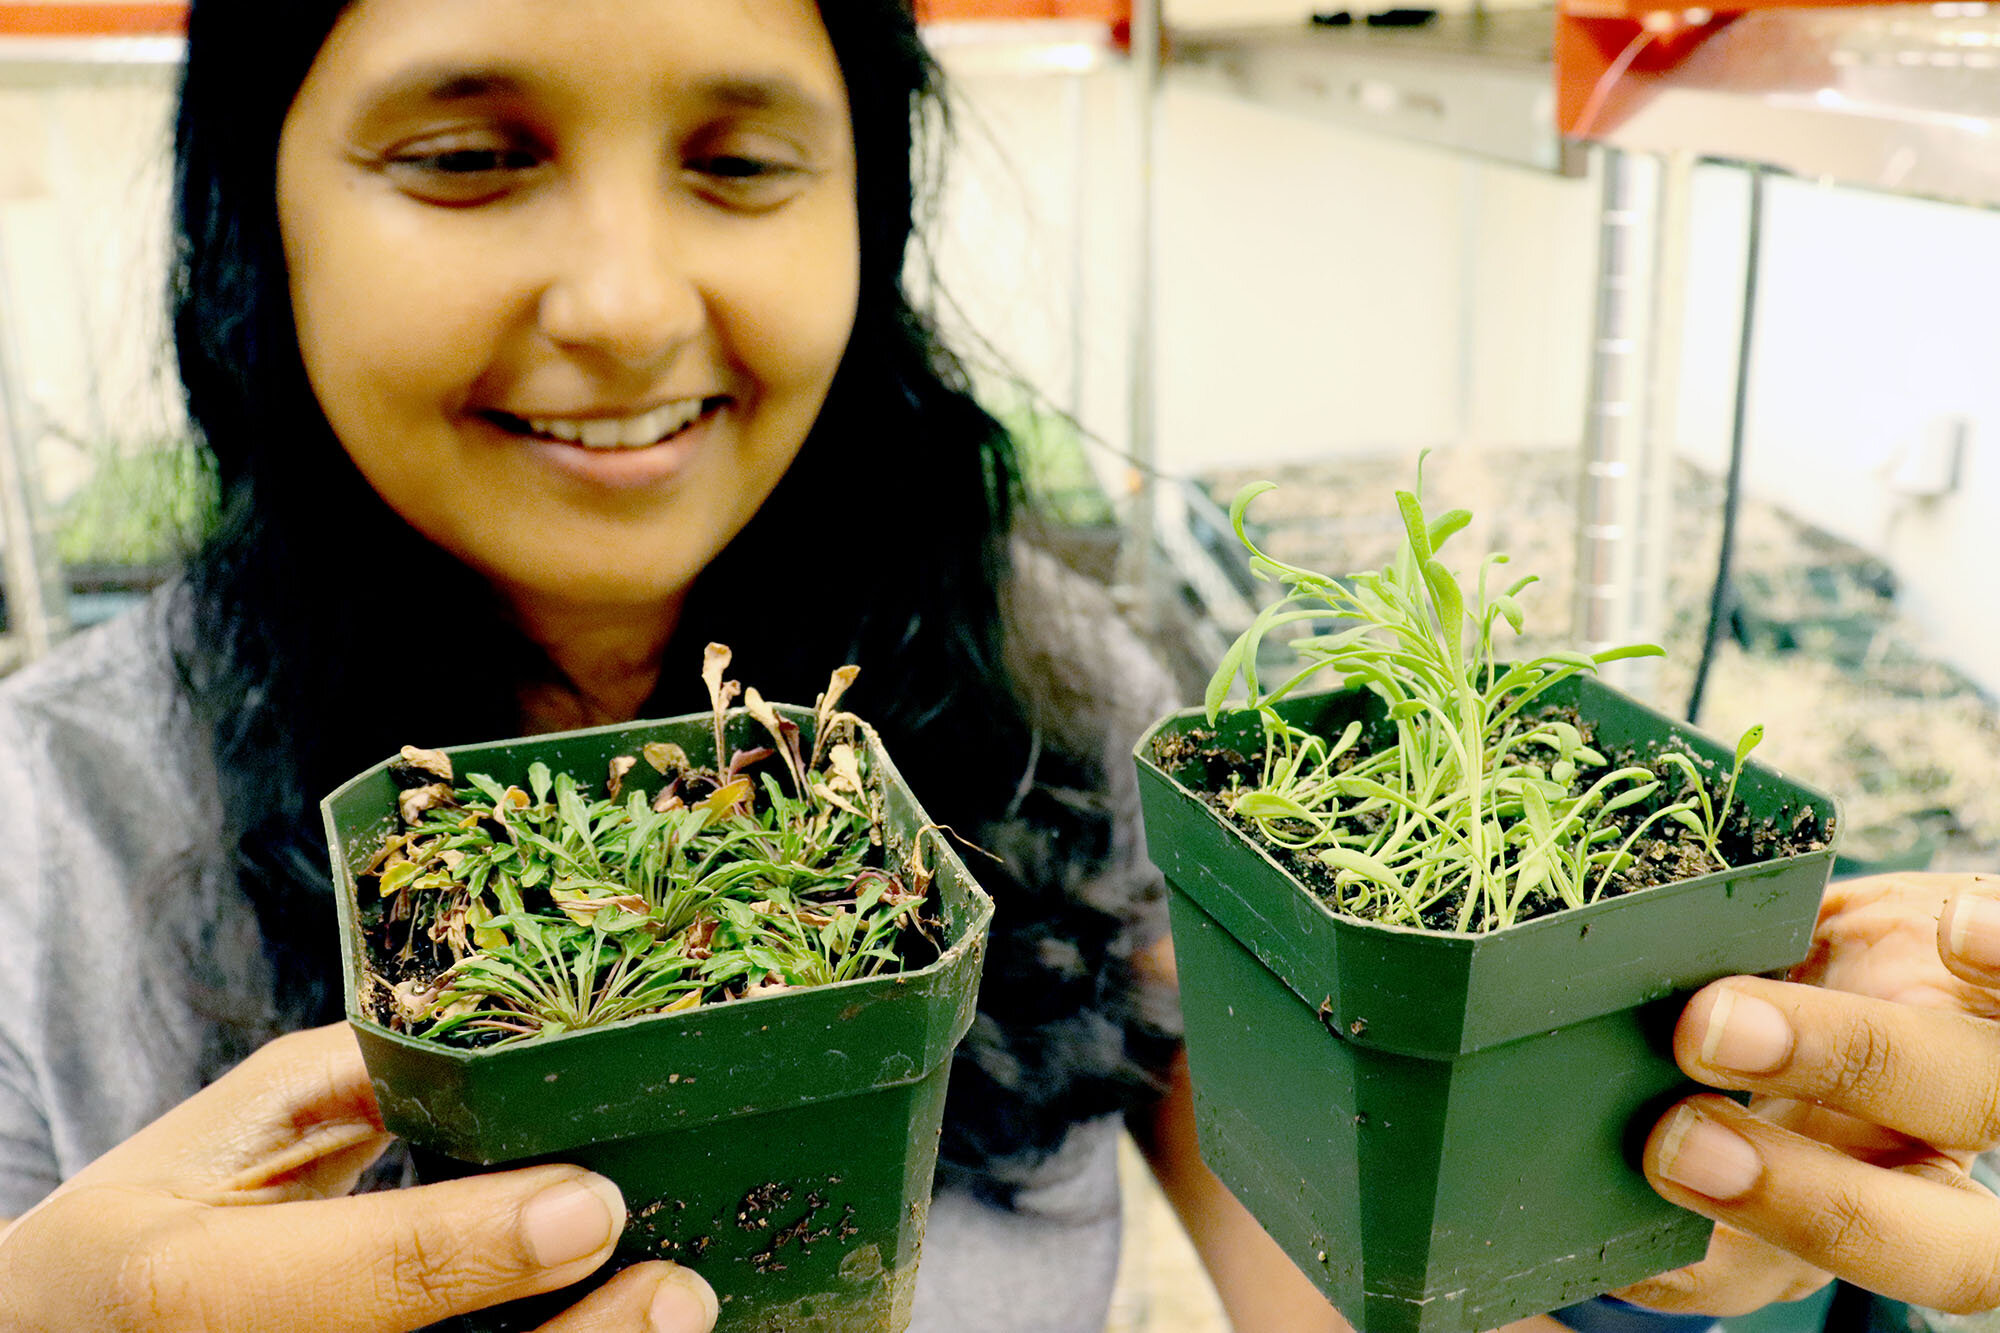 Dr. Maheshi Dassanayake holds Schrenkiella parvula and Eutrema salsugineum, the two extremophytes used as model plants in the NSF Edge research project.